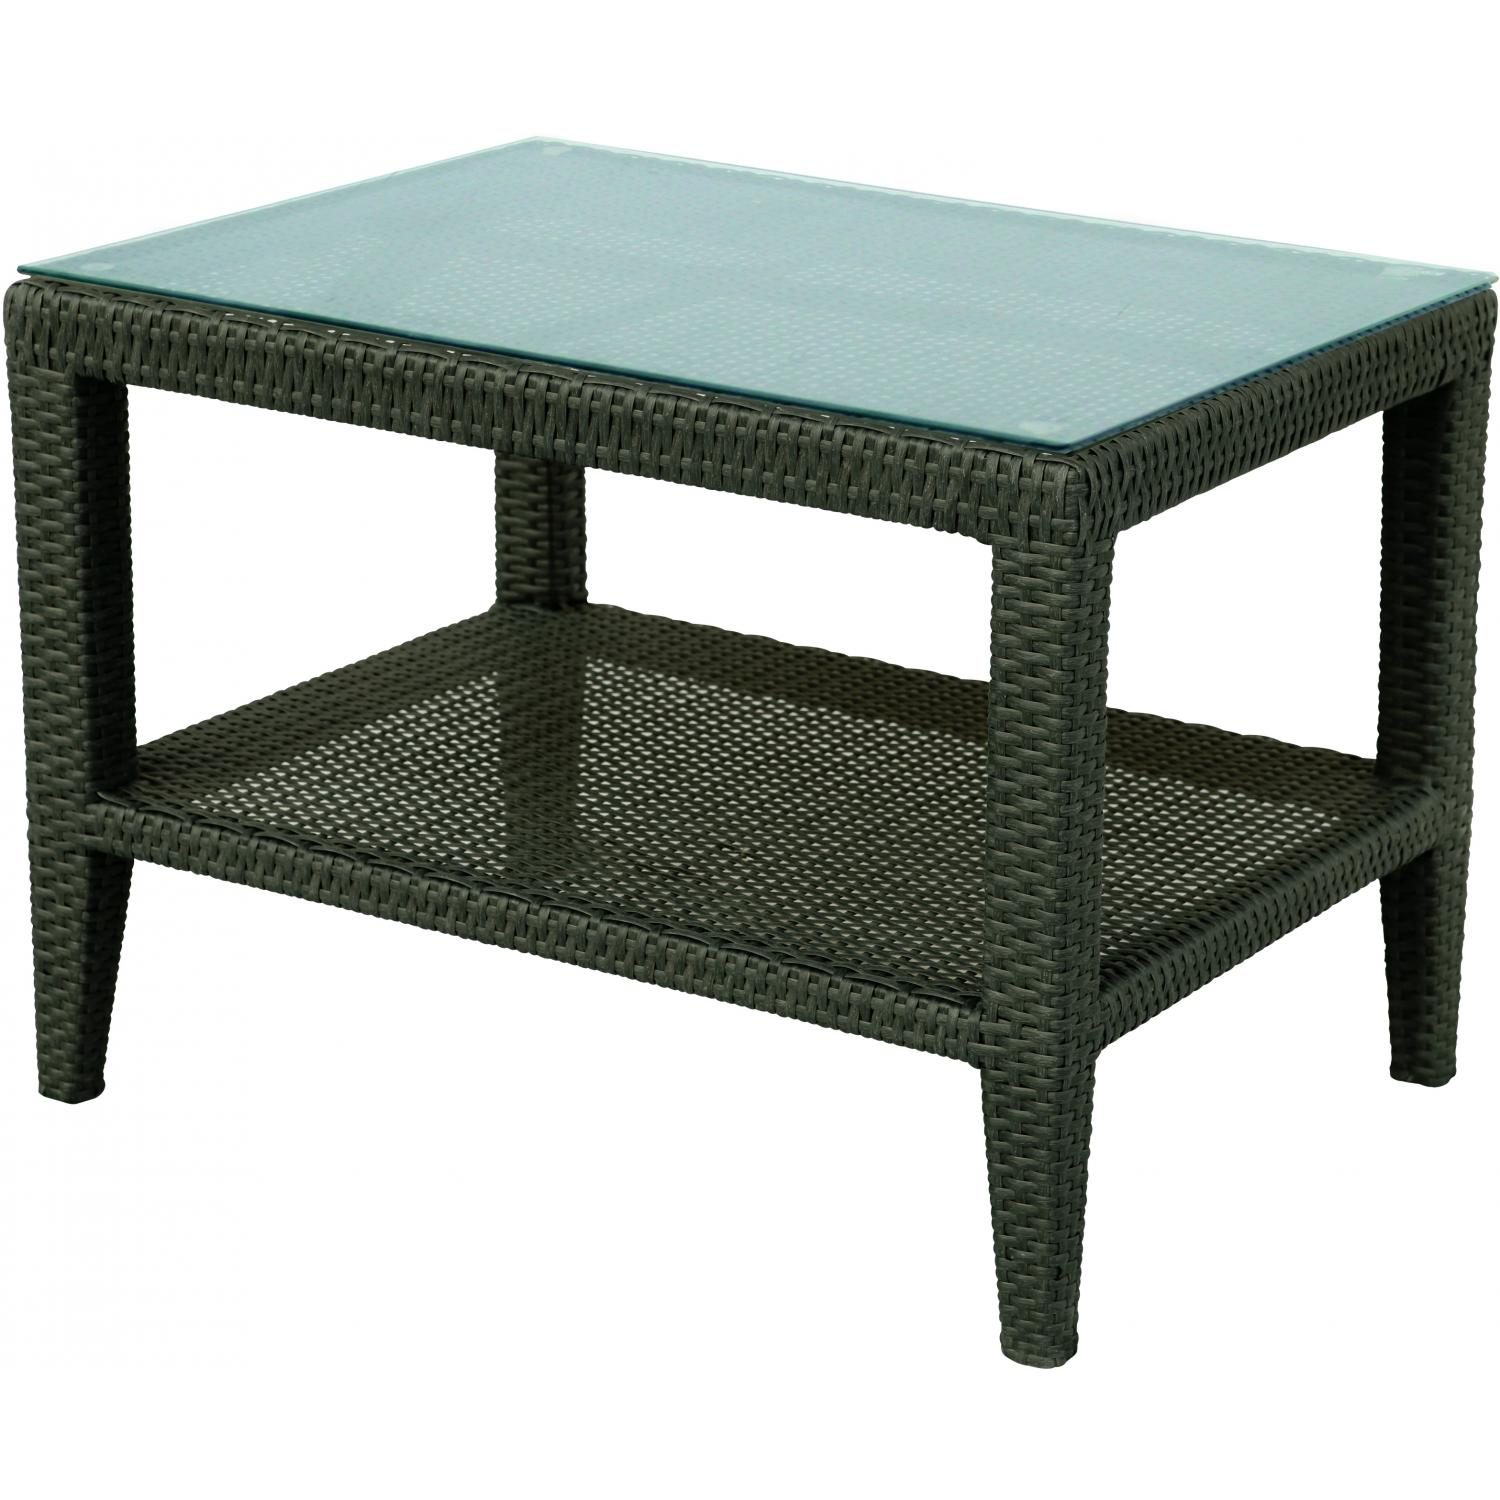 darlee vienna resin wicker patio side table with glass top outdoor entryway lamp metal garden battery powered living room lamps gold square coffee round tile grey console bar